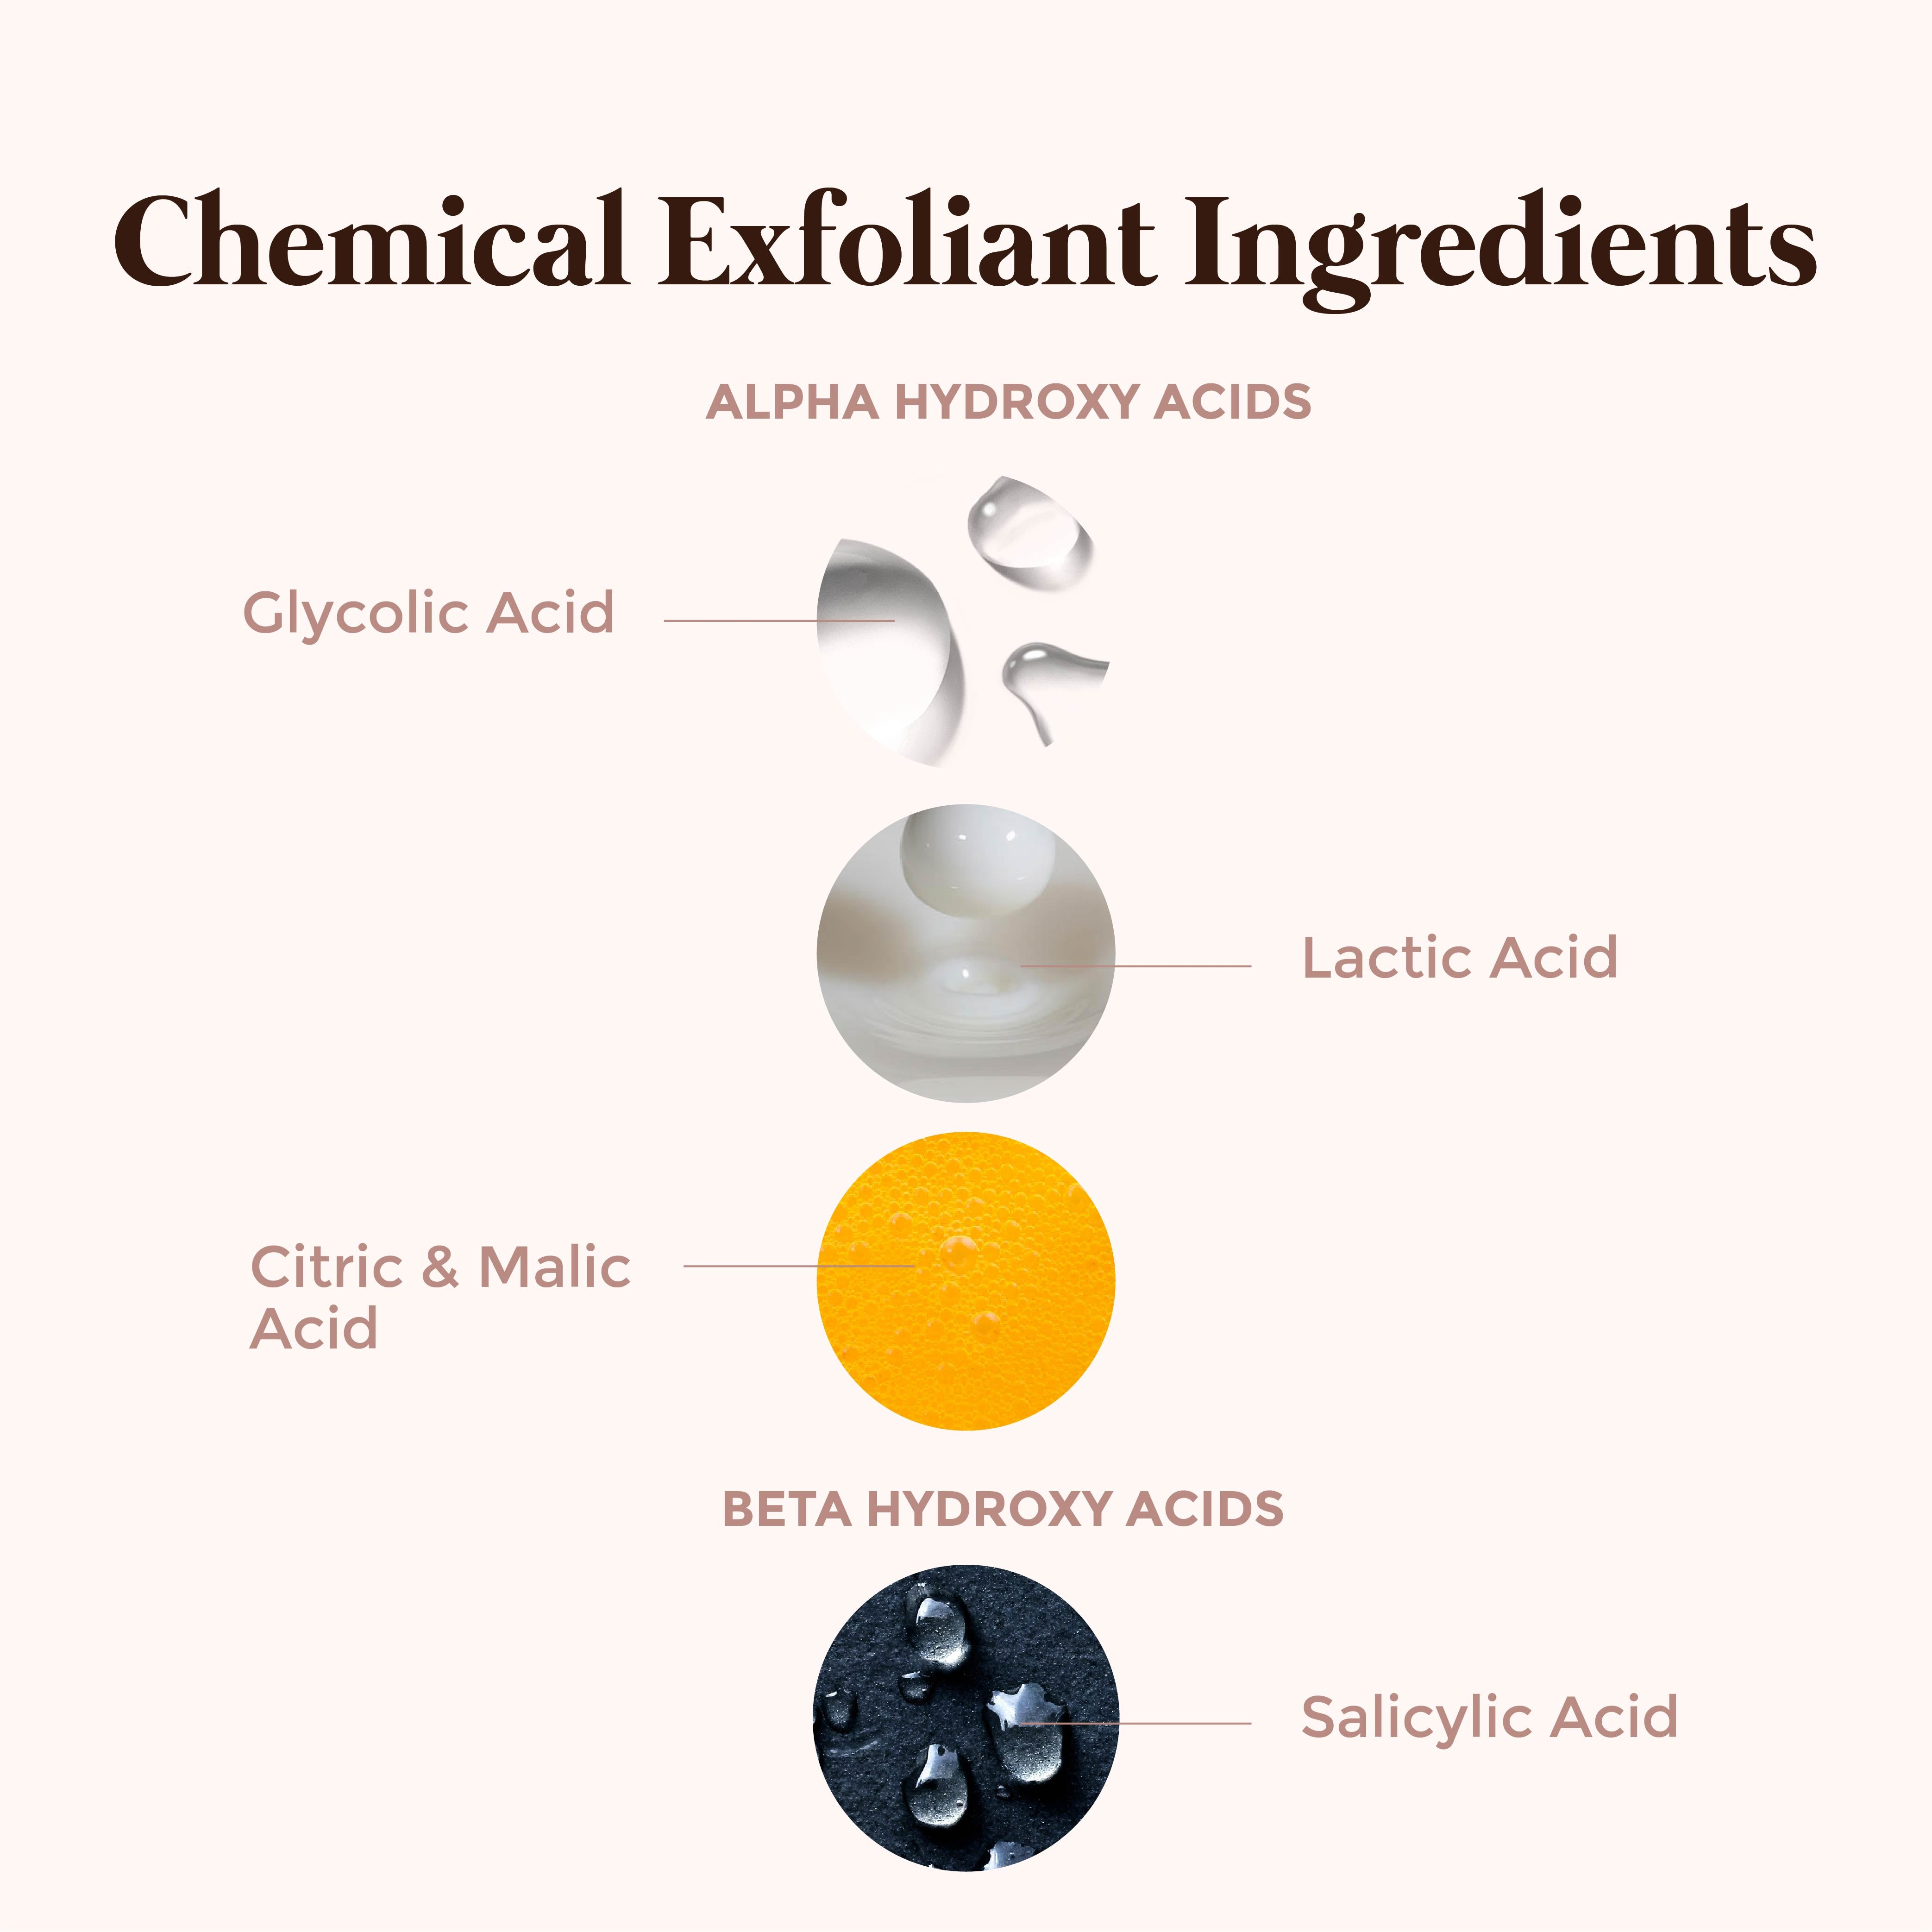 This is an image of the different chemical exfoliators on www.sublimelife.in